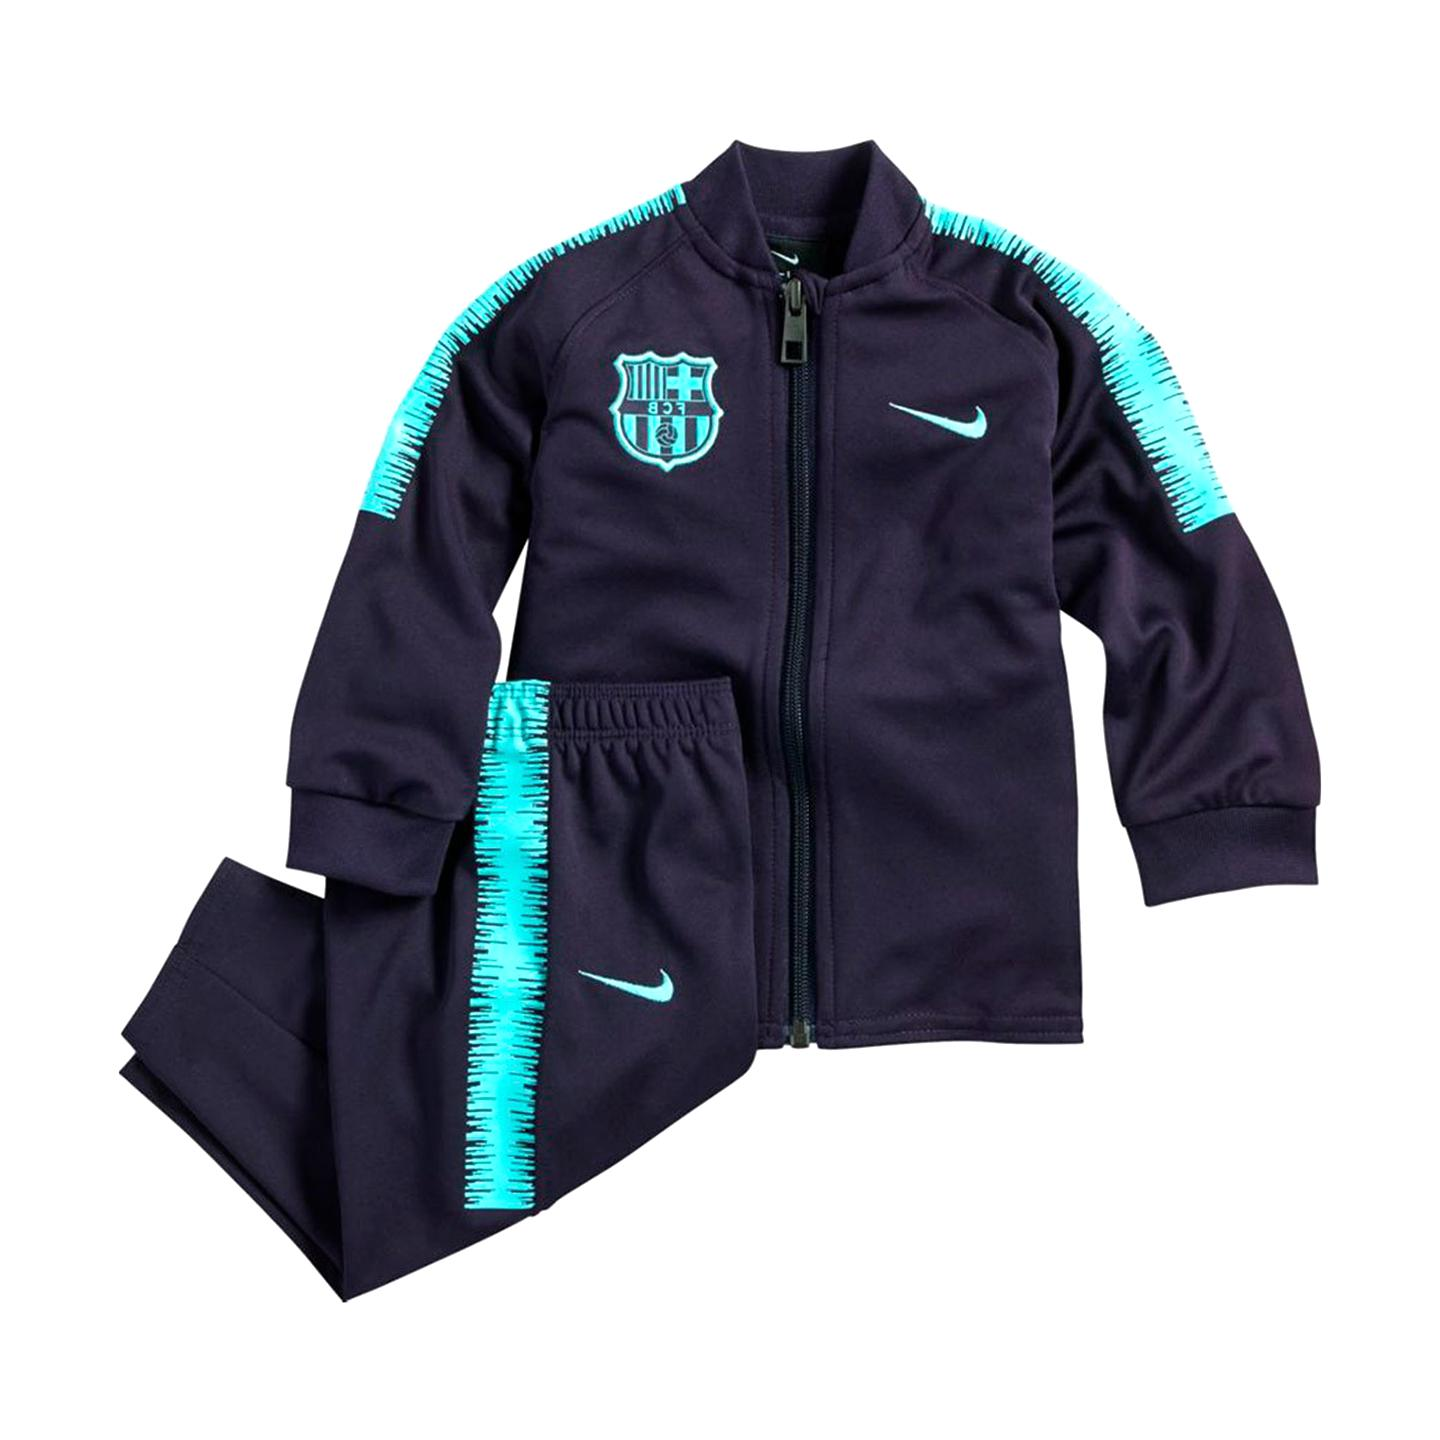 Survetement Nike Bebe d'occasion